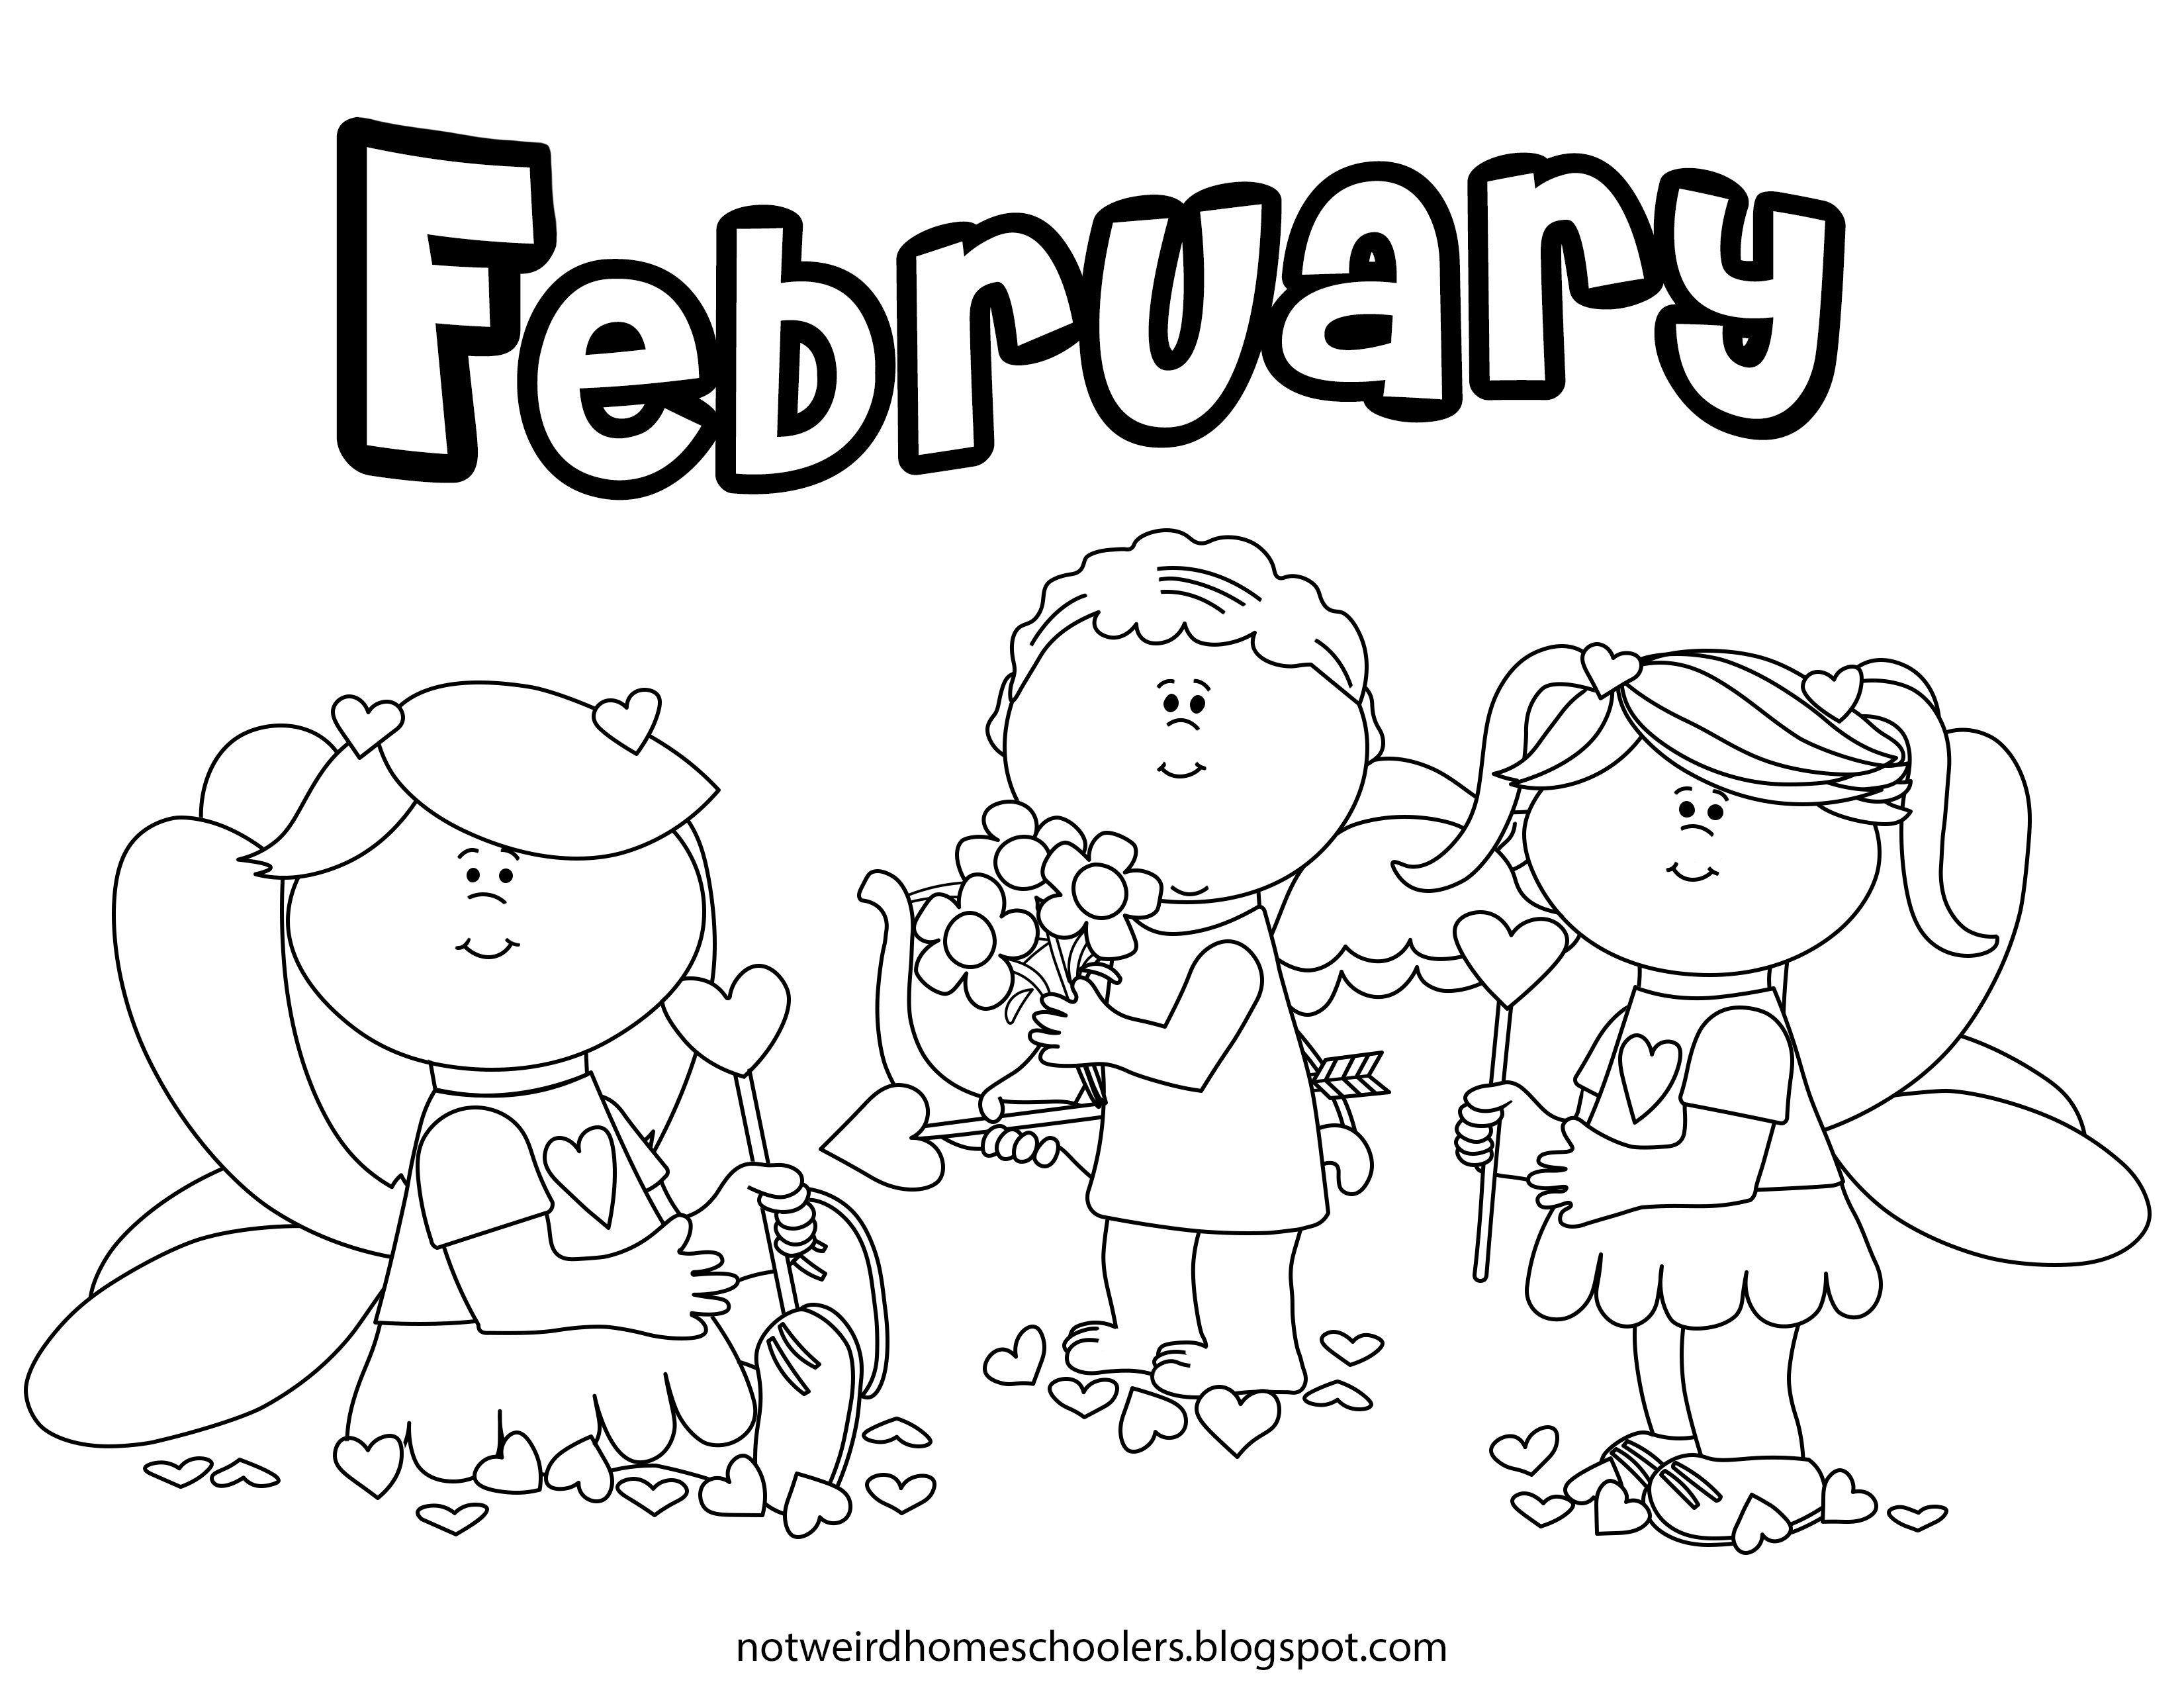 Free Valentines Day February Coloring Page (With images ...